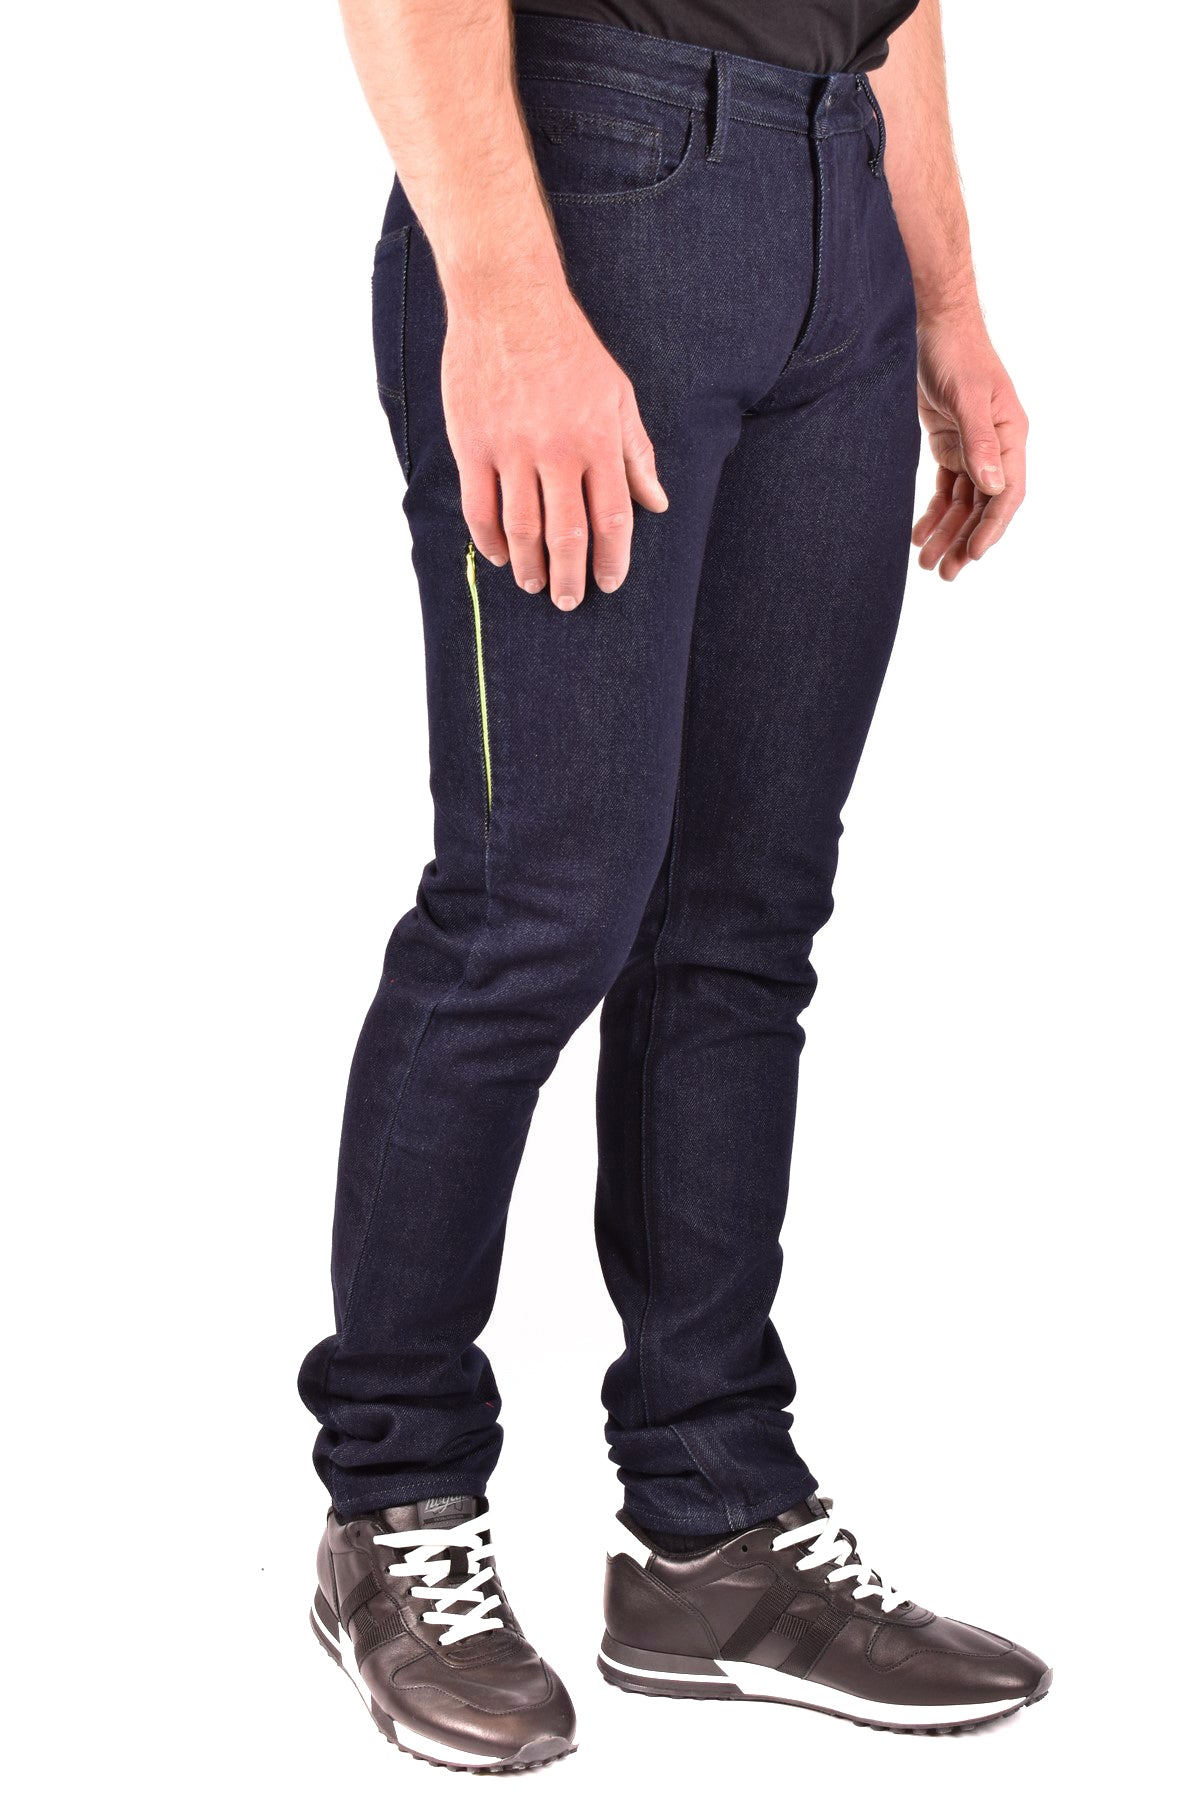 Jeans Emporio Armani-Men's Fashion - Men's Clothing - Jeans-Product Details Terms: New With LabelClothing Type: JeansMain Color: BlueSeason: Fall / WinterMade In: BulgariaGender: ManSize: UsComposition: Cotton 100%Year: 2019Manufacturer Part Number: 3H1J06 1D8Sz 0941-Keyomi-Sook